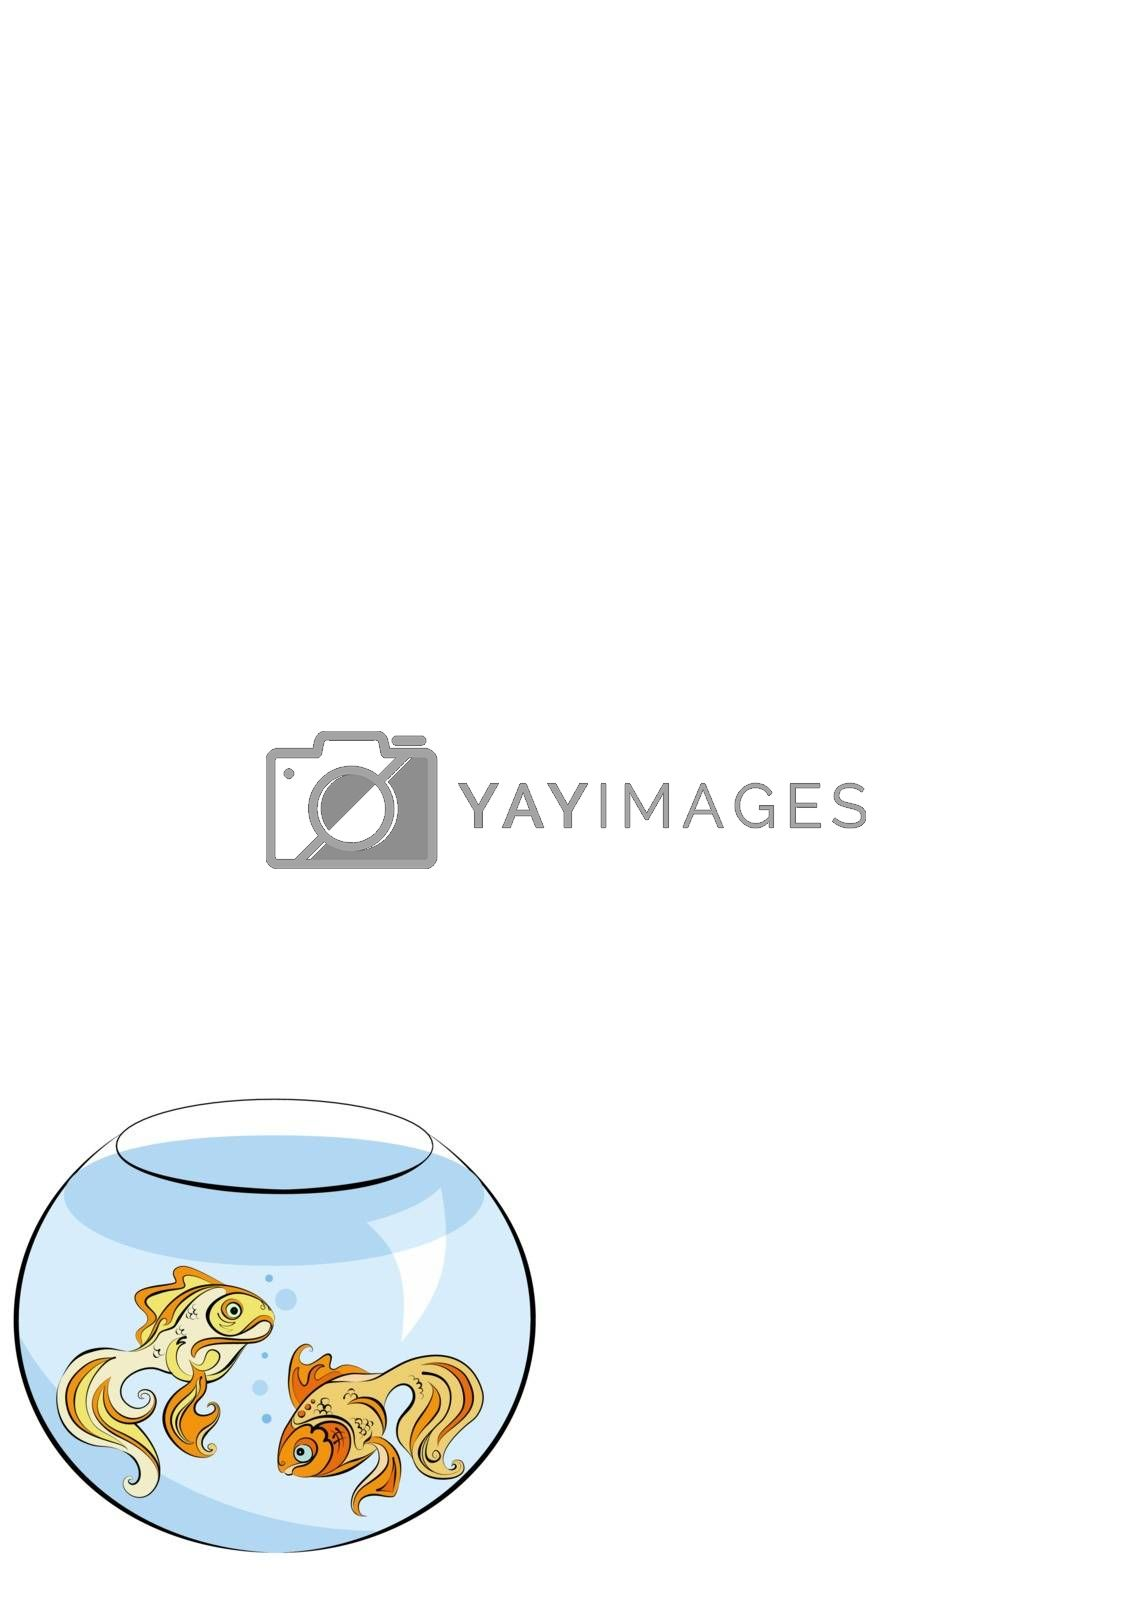 Illustration of two stylized Golden fish in the aquarium by Madhourse